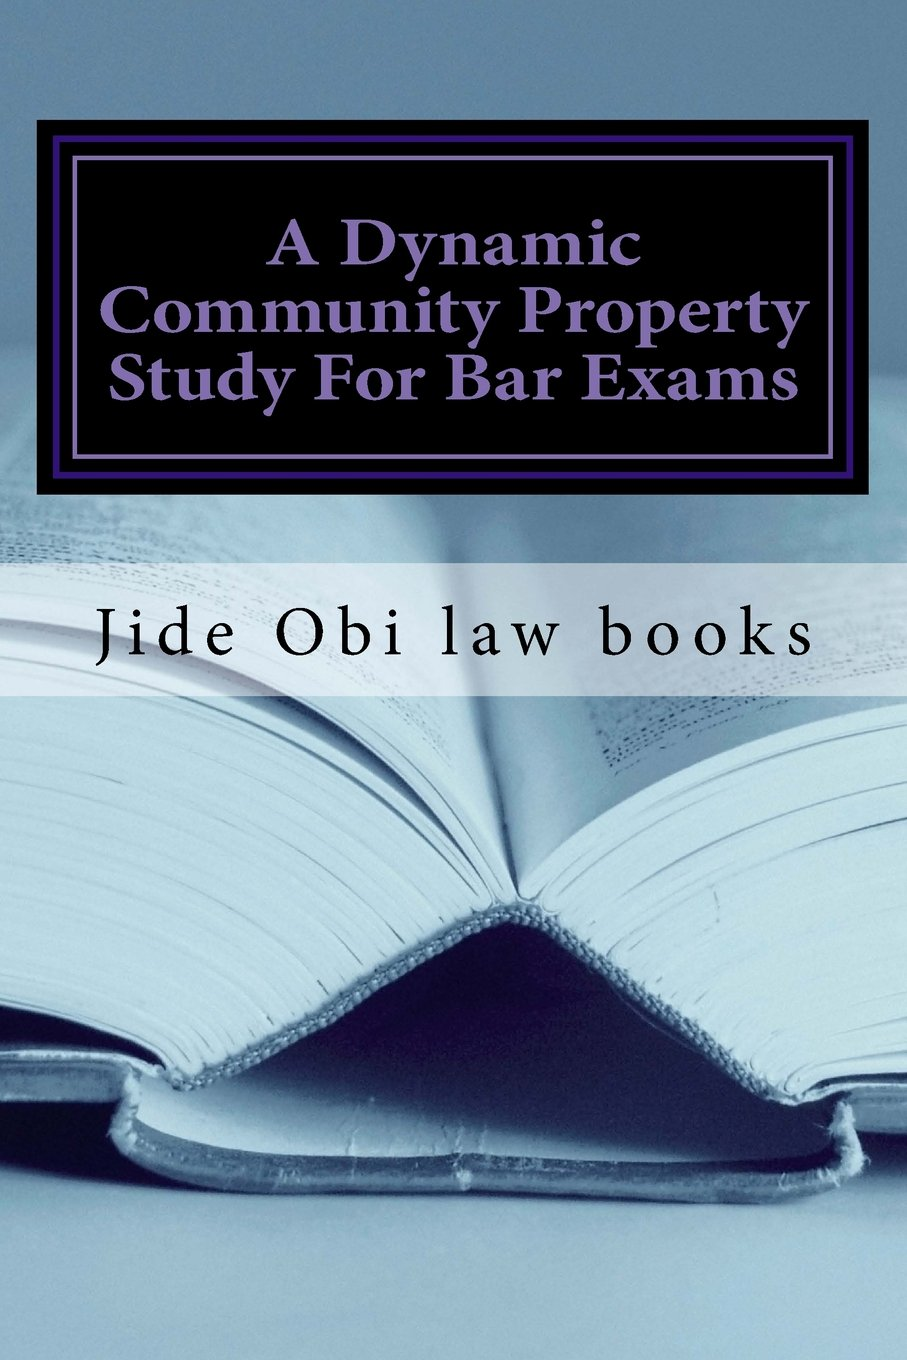 A Dynamic Community Property Study For Bar Exams: Beautifully covers Pereira and Van Camp as well as reverse Pereira and reverse Van Camp - the two California Community Property law issues pdf